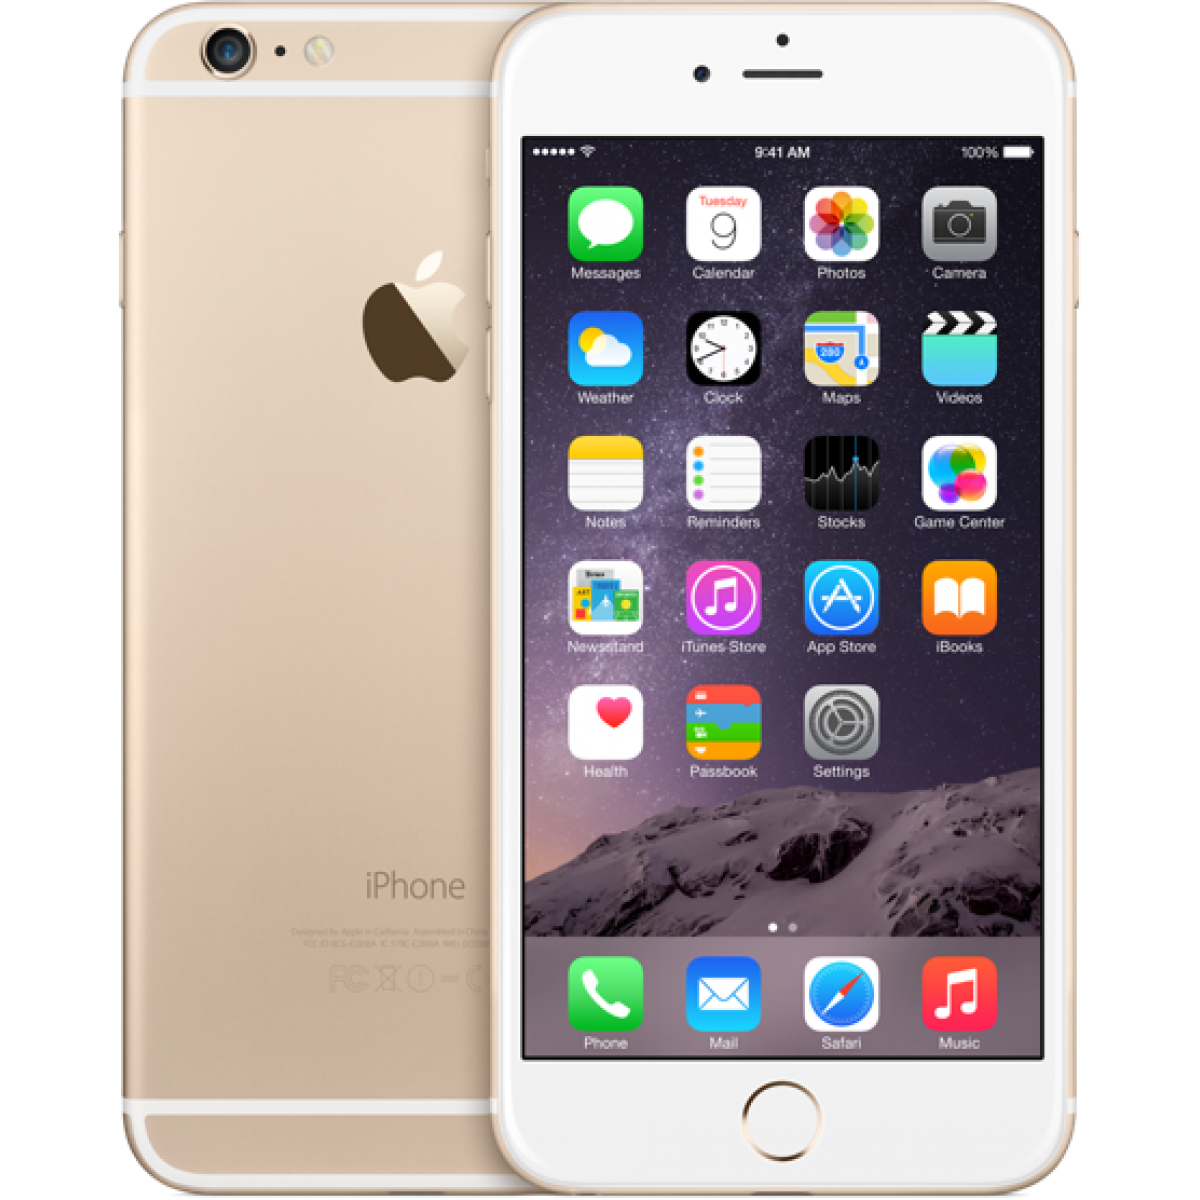 Iphone 5 back png apple iphone 5 16gb -  Apple Iphone 6 Plus 16gb No Contract For Verizon Wireless Gold